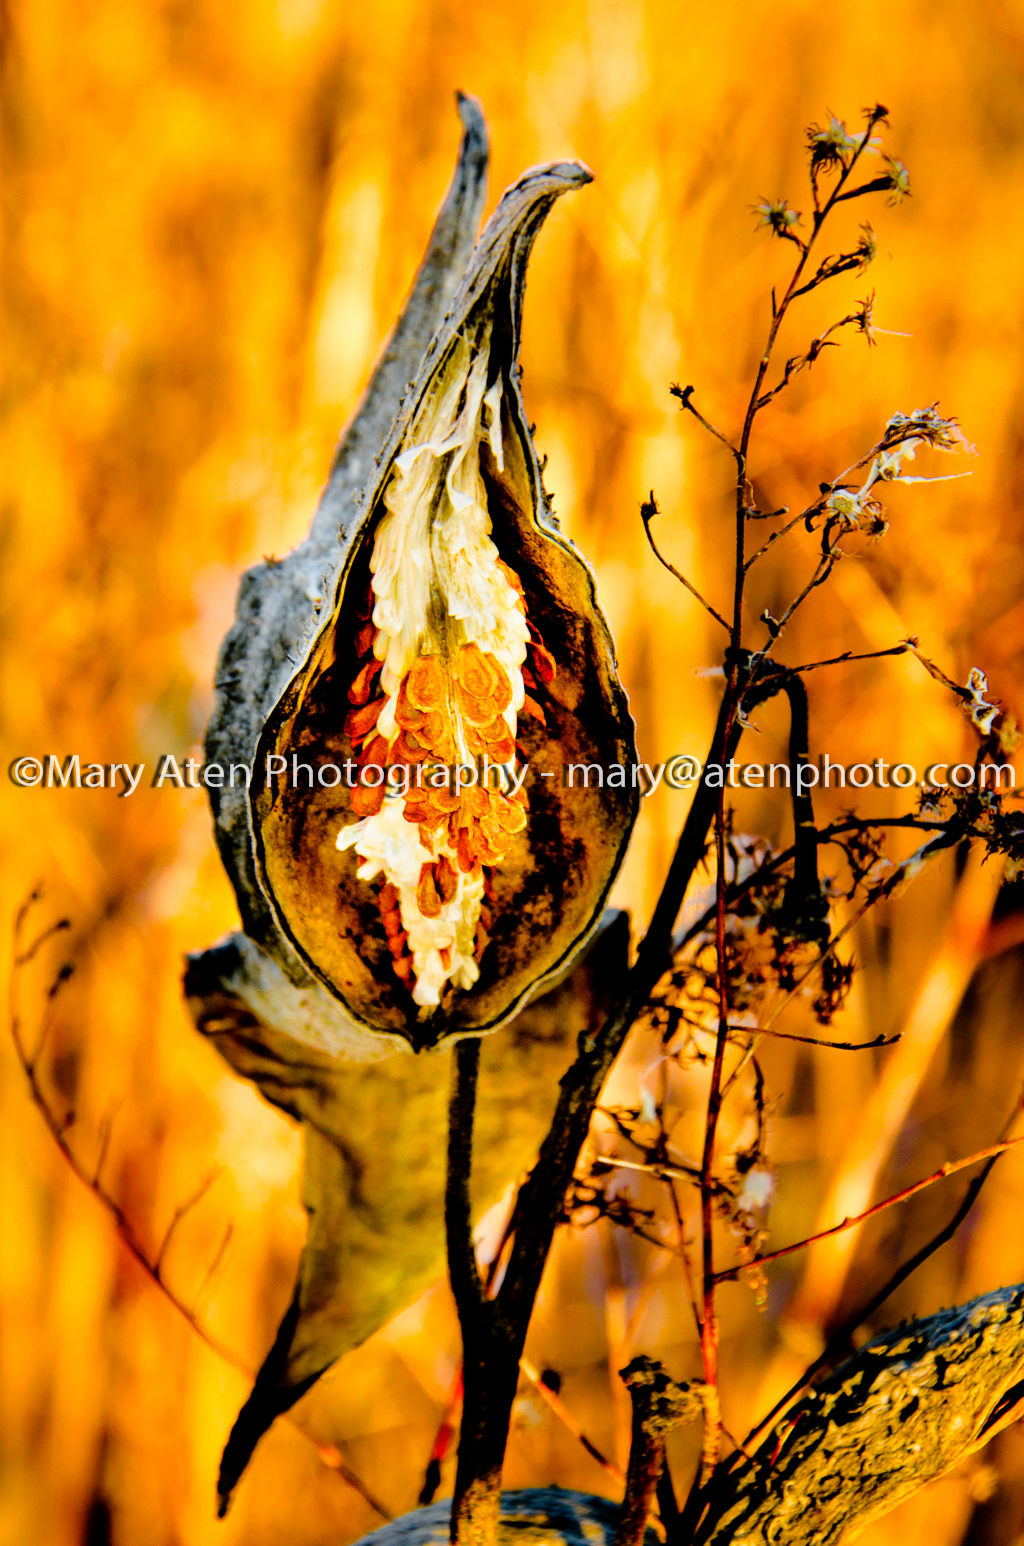 Milkweed Pod Photo With Seed And Fluff In Tact In Golden